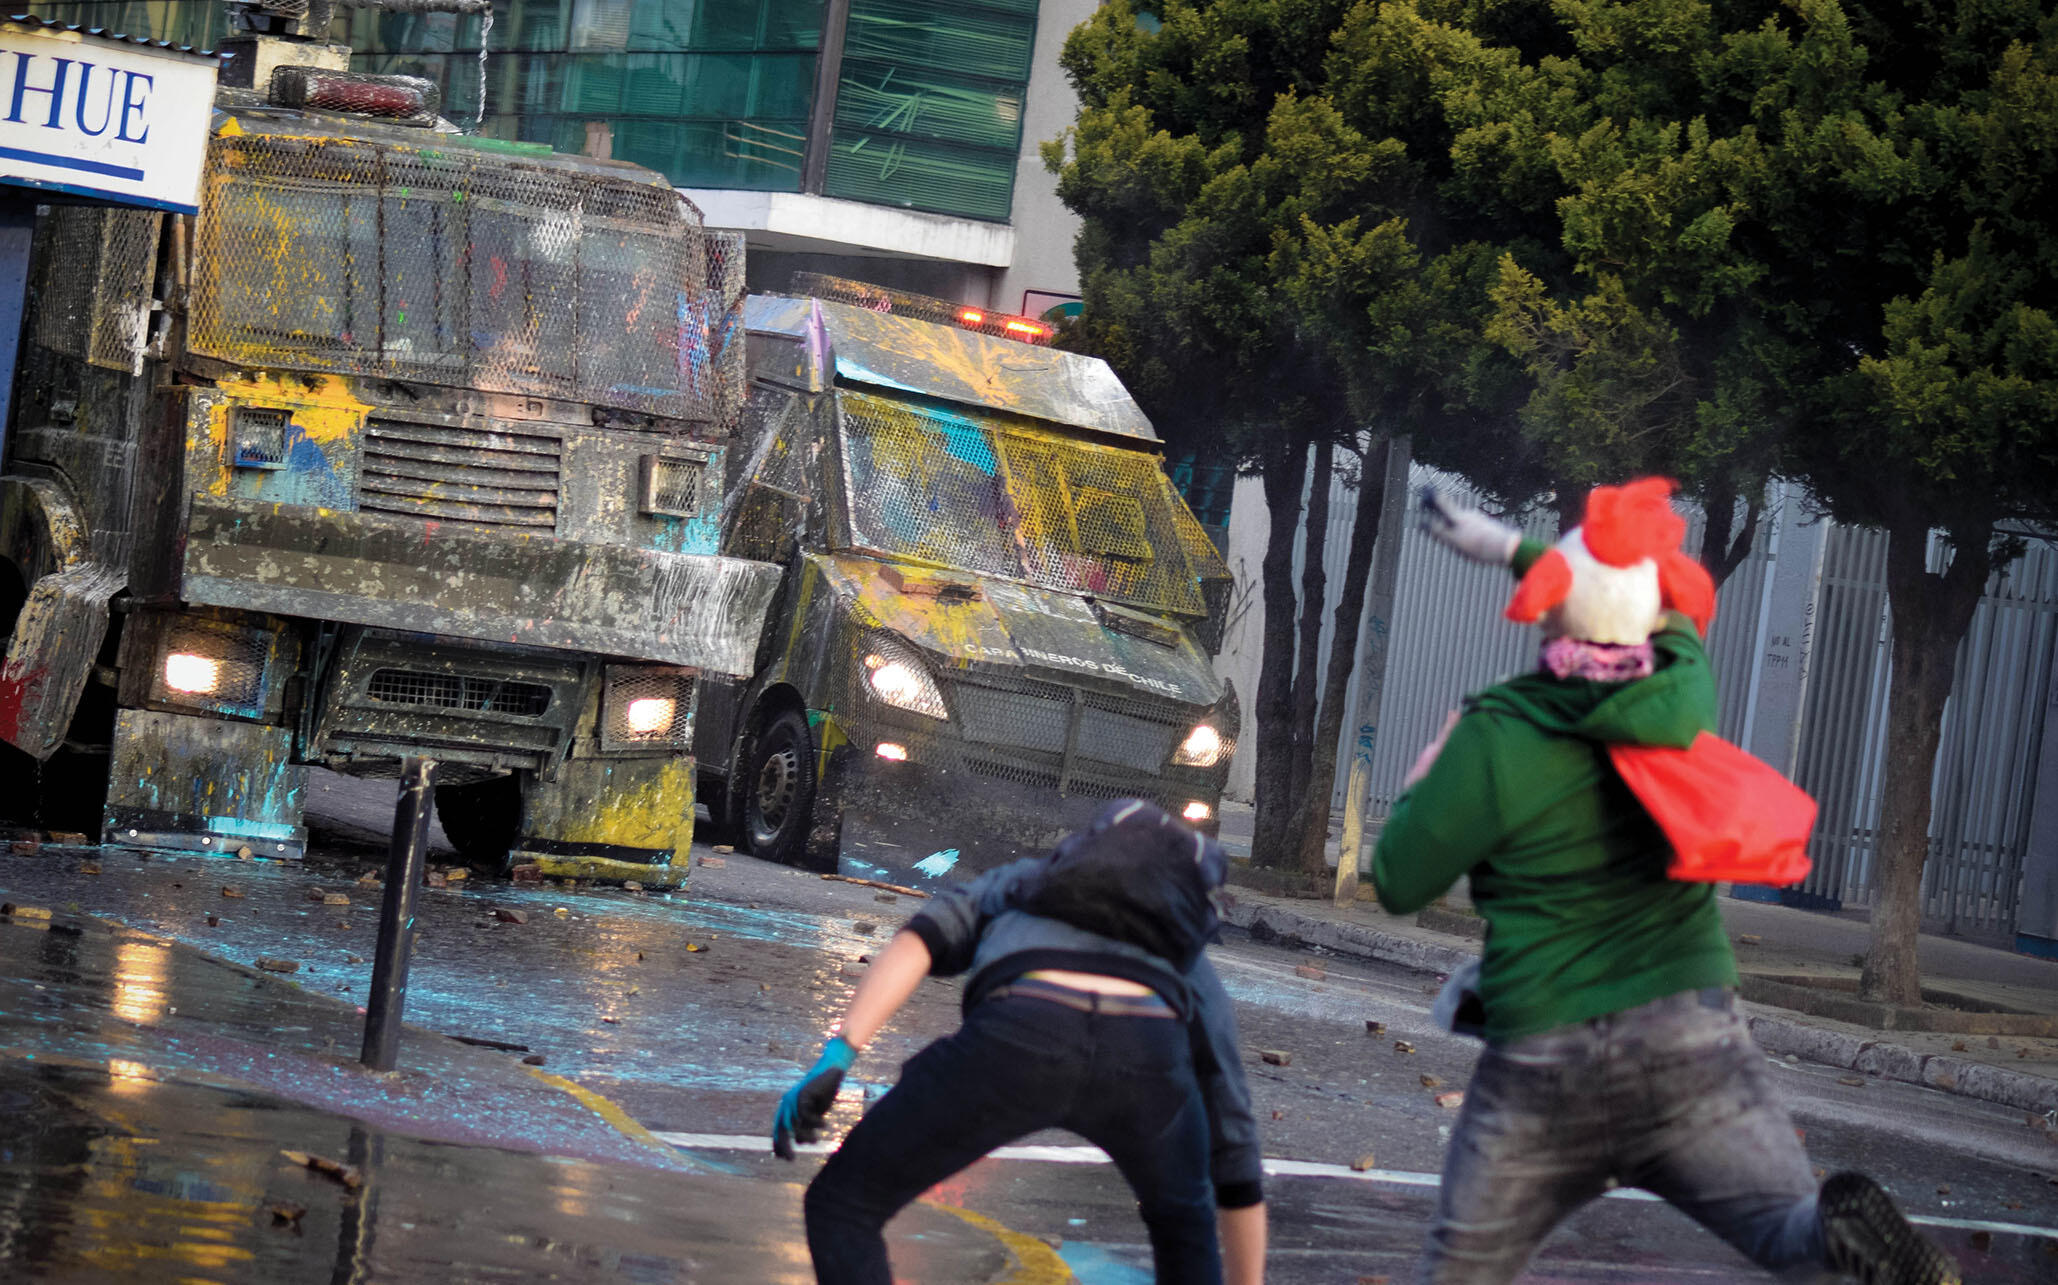 Demonstrators throw paint at police vehicles in Santiago, November 2019. (Photo by cameramemories.)